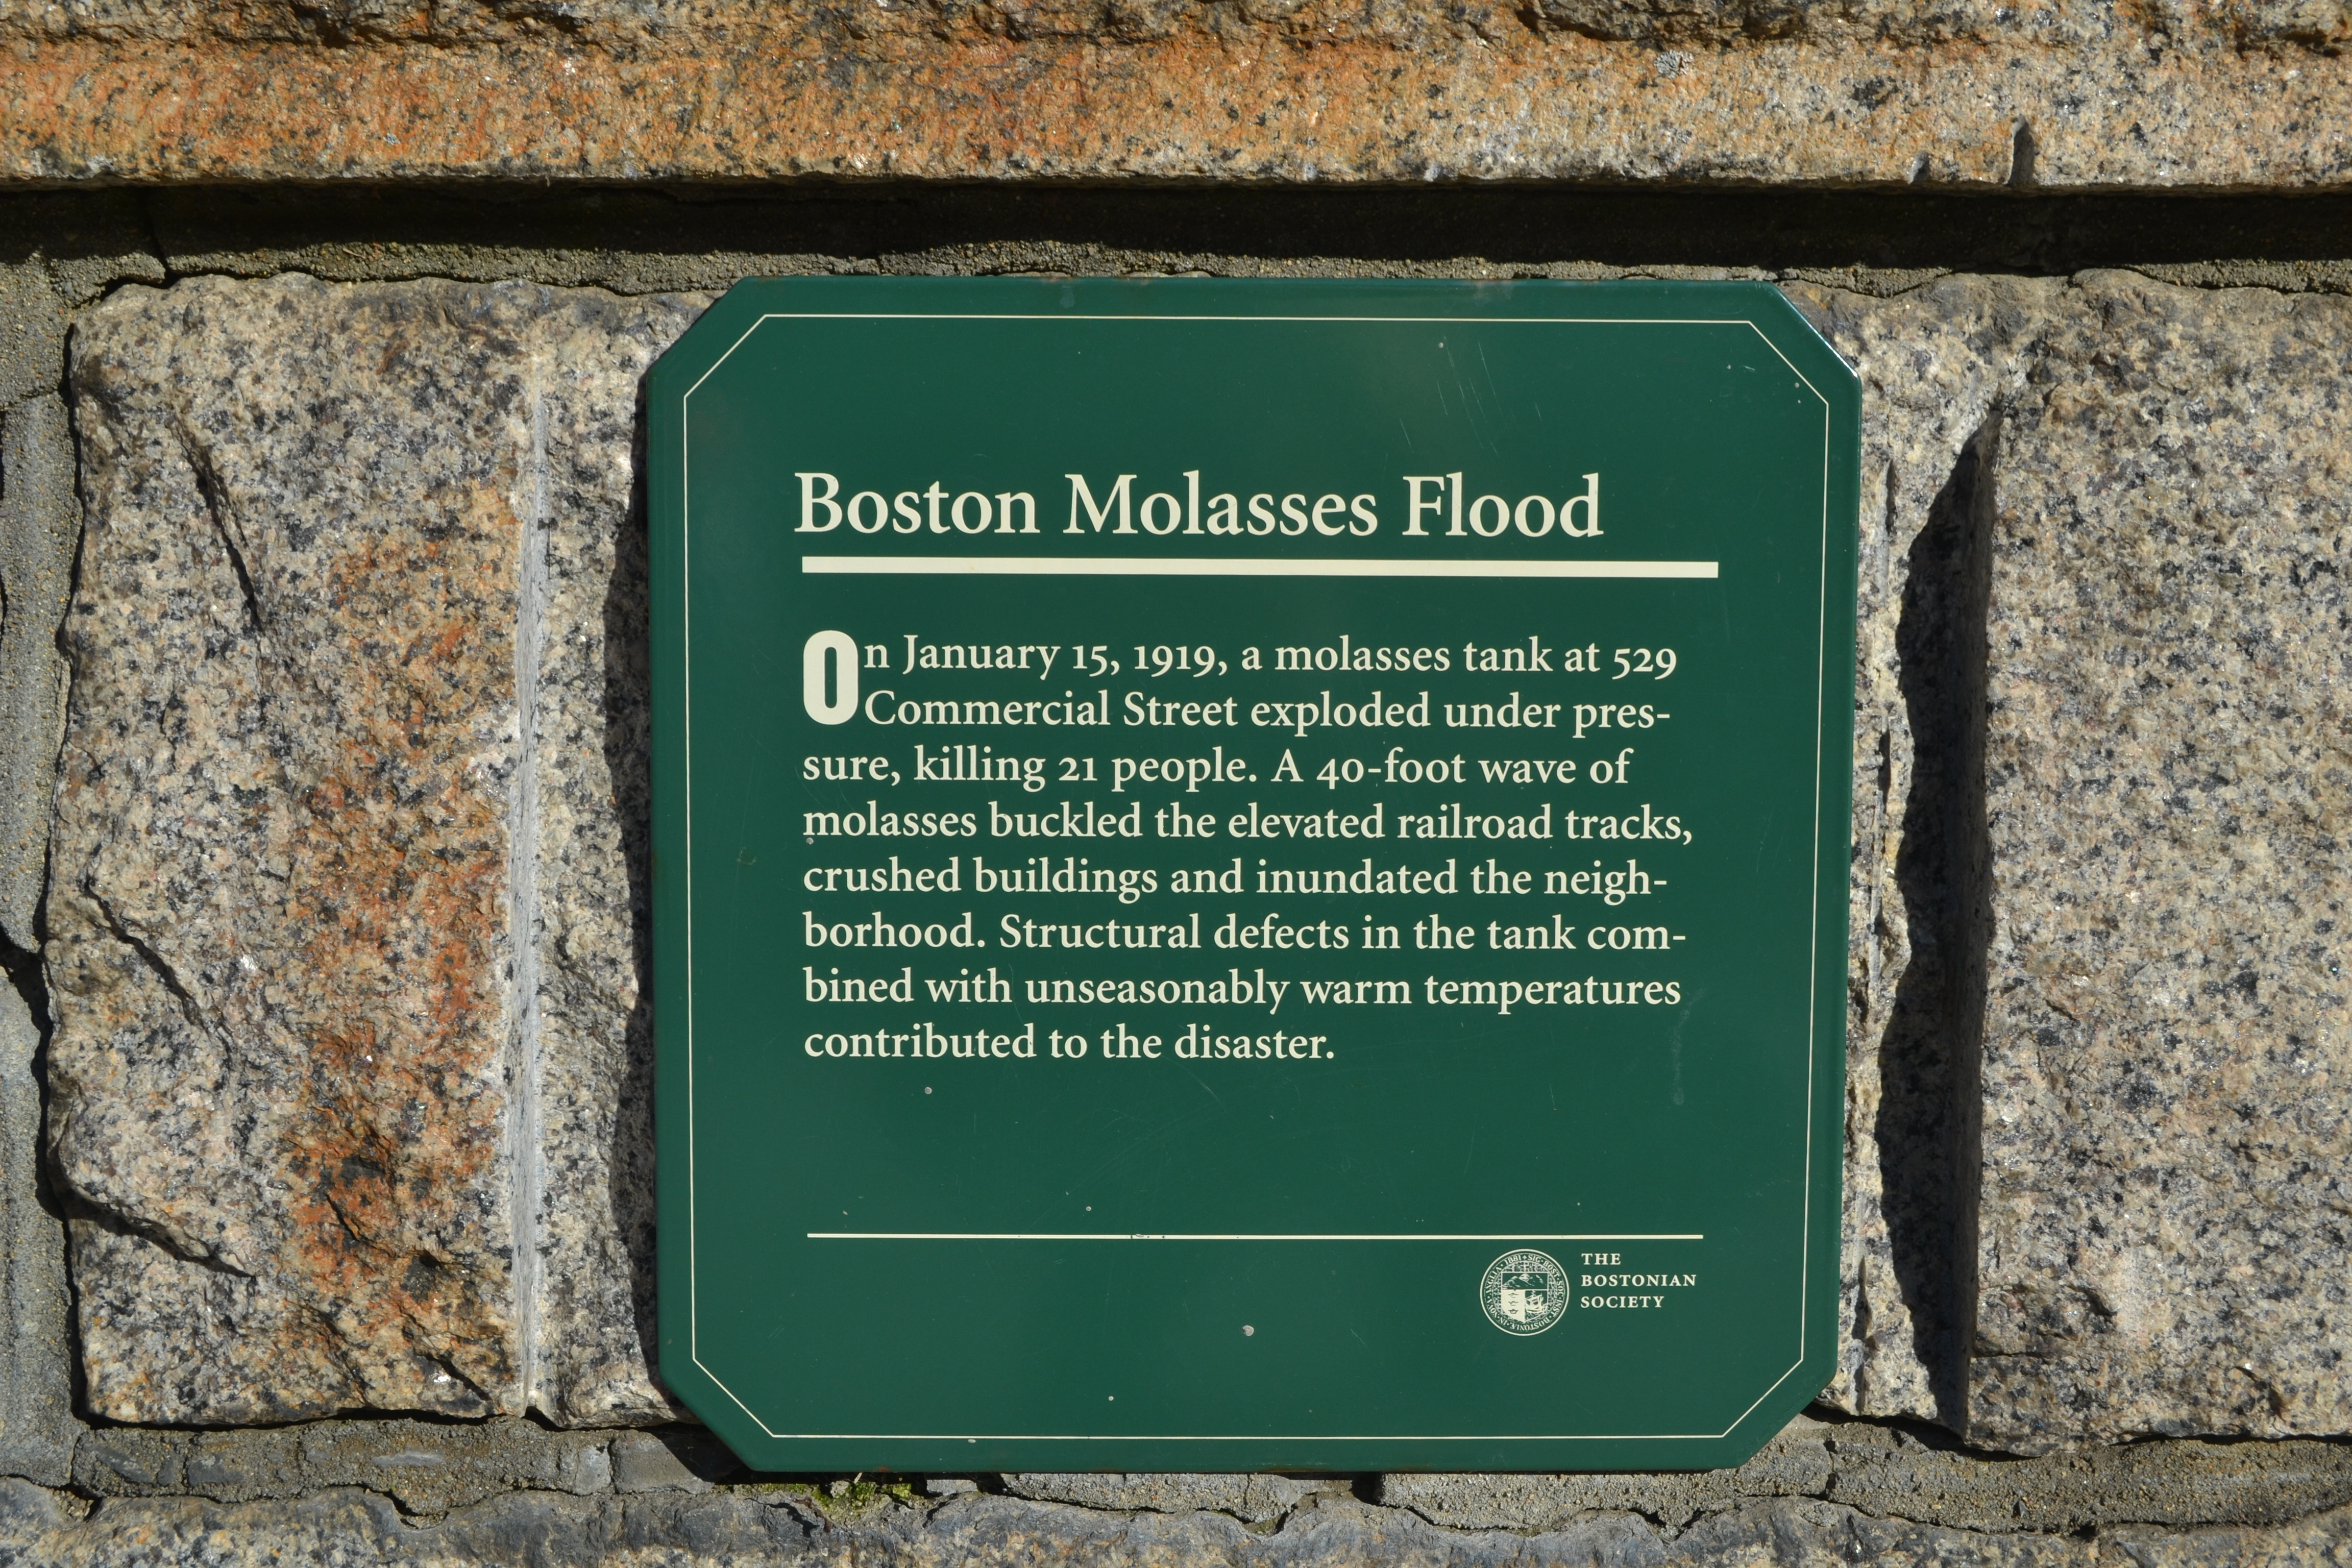 Remembering The Great Boston Molasses Flood, 100 Years Later